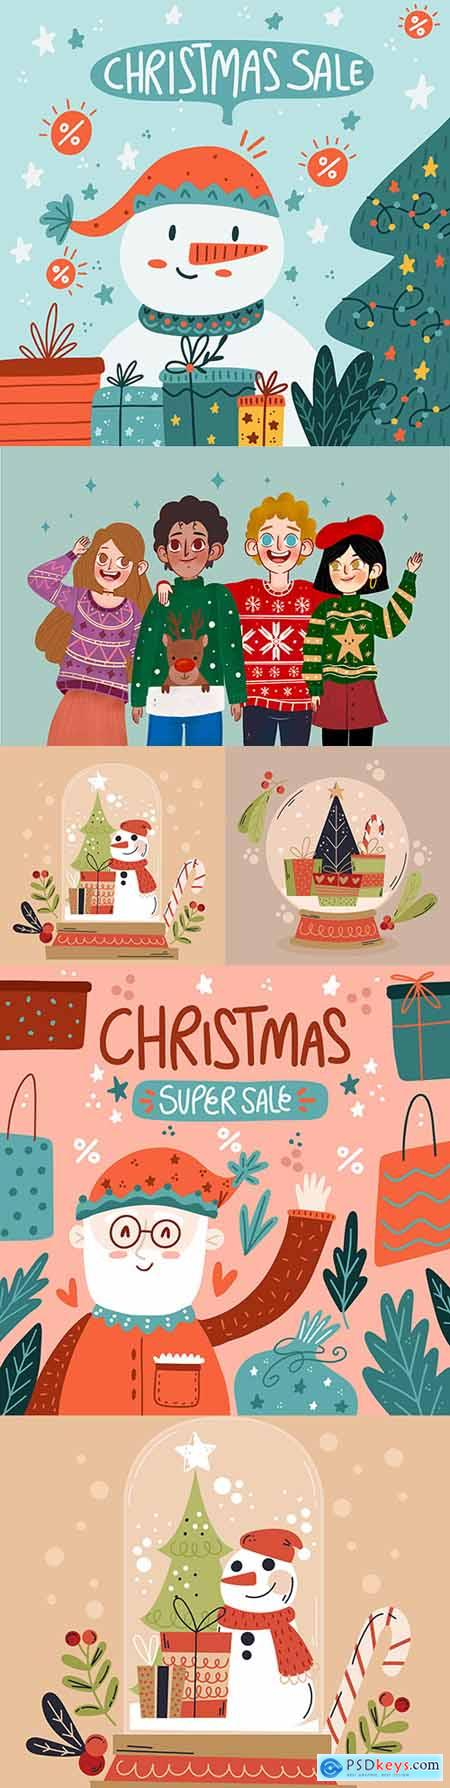 Christmas sales and people in knitted sweaters hand-drawn illustrations